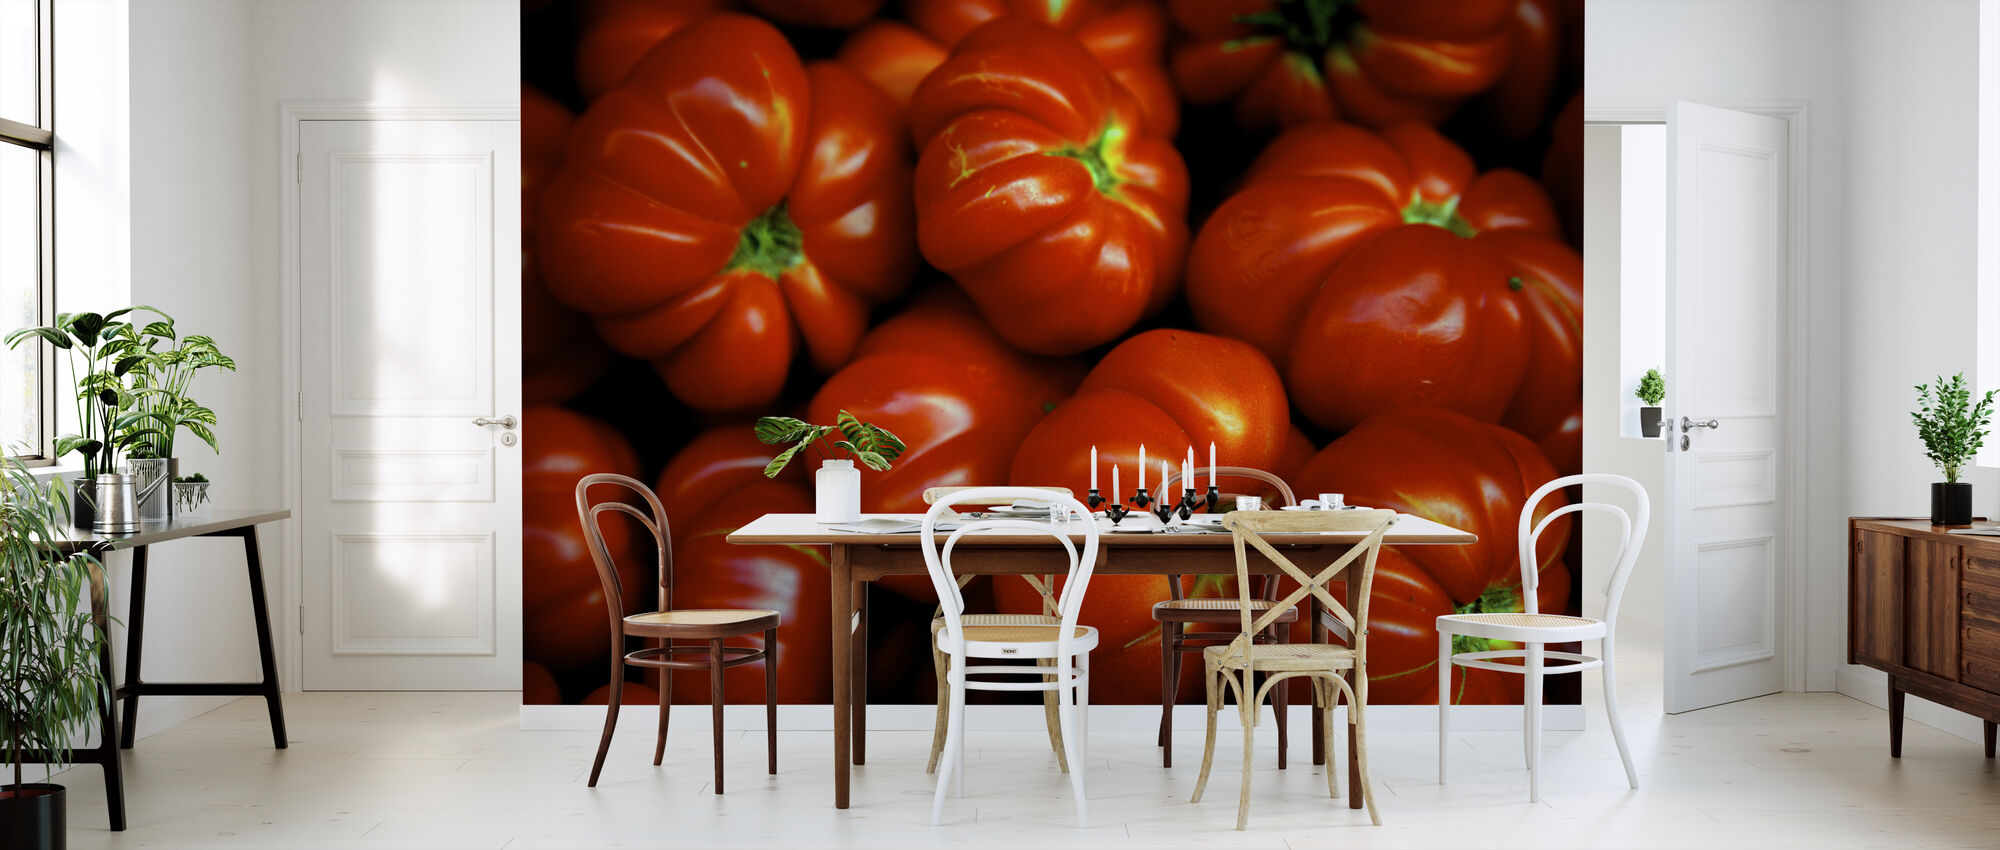 Italian Tomatoes - Wallpaper - Kitchen